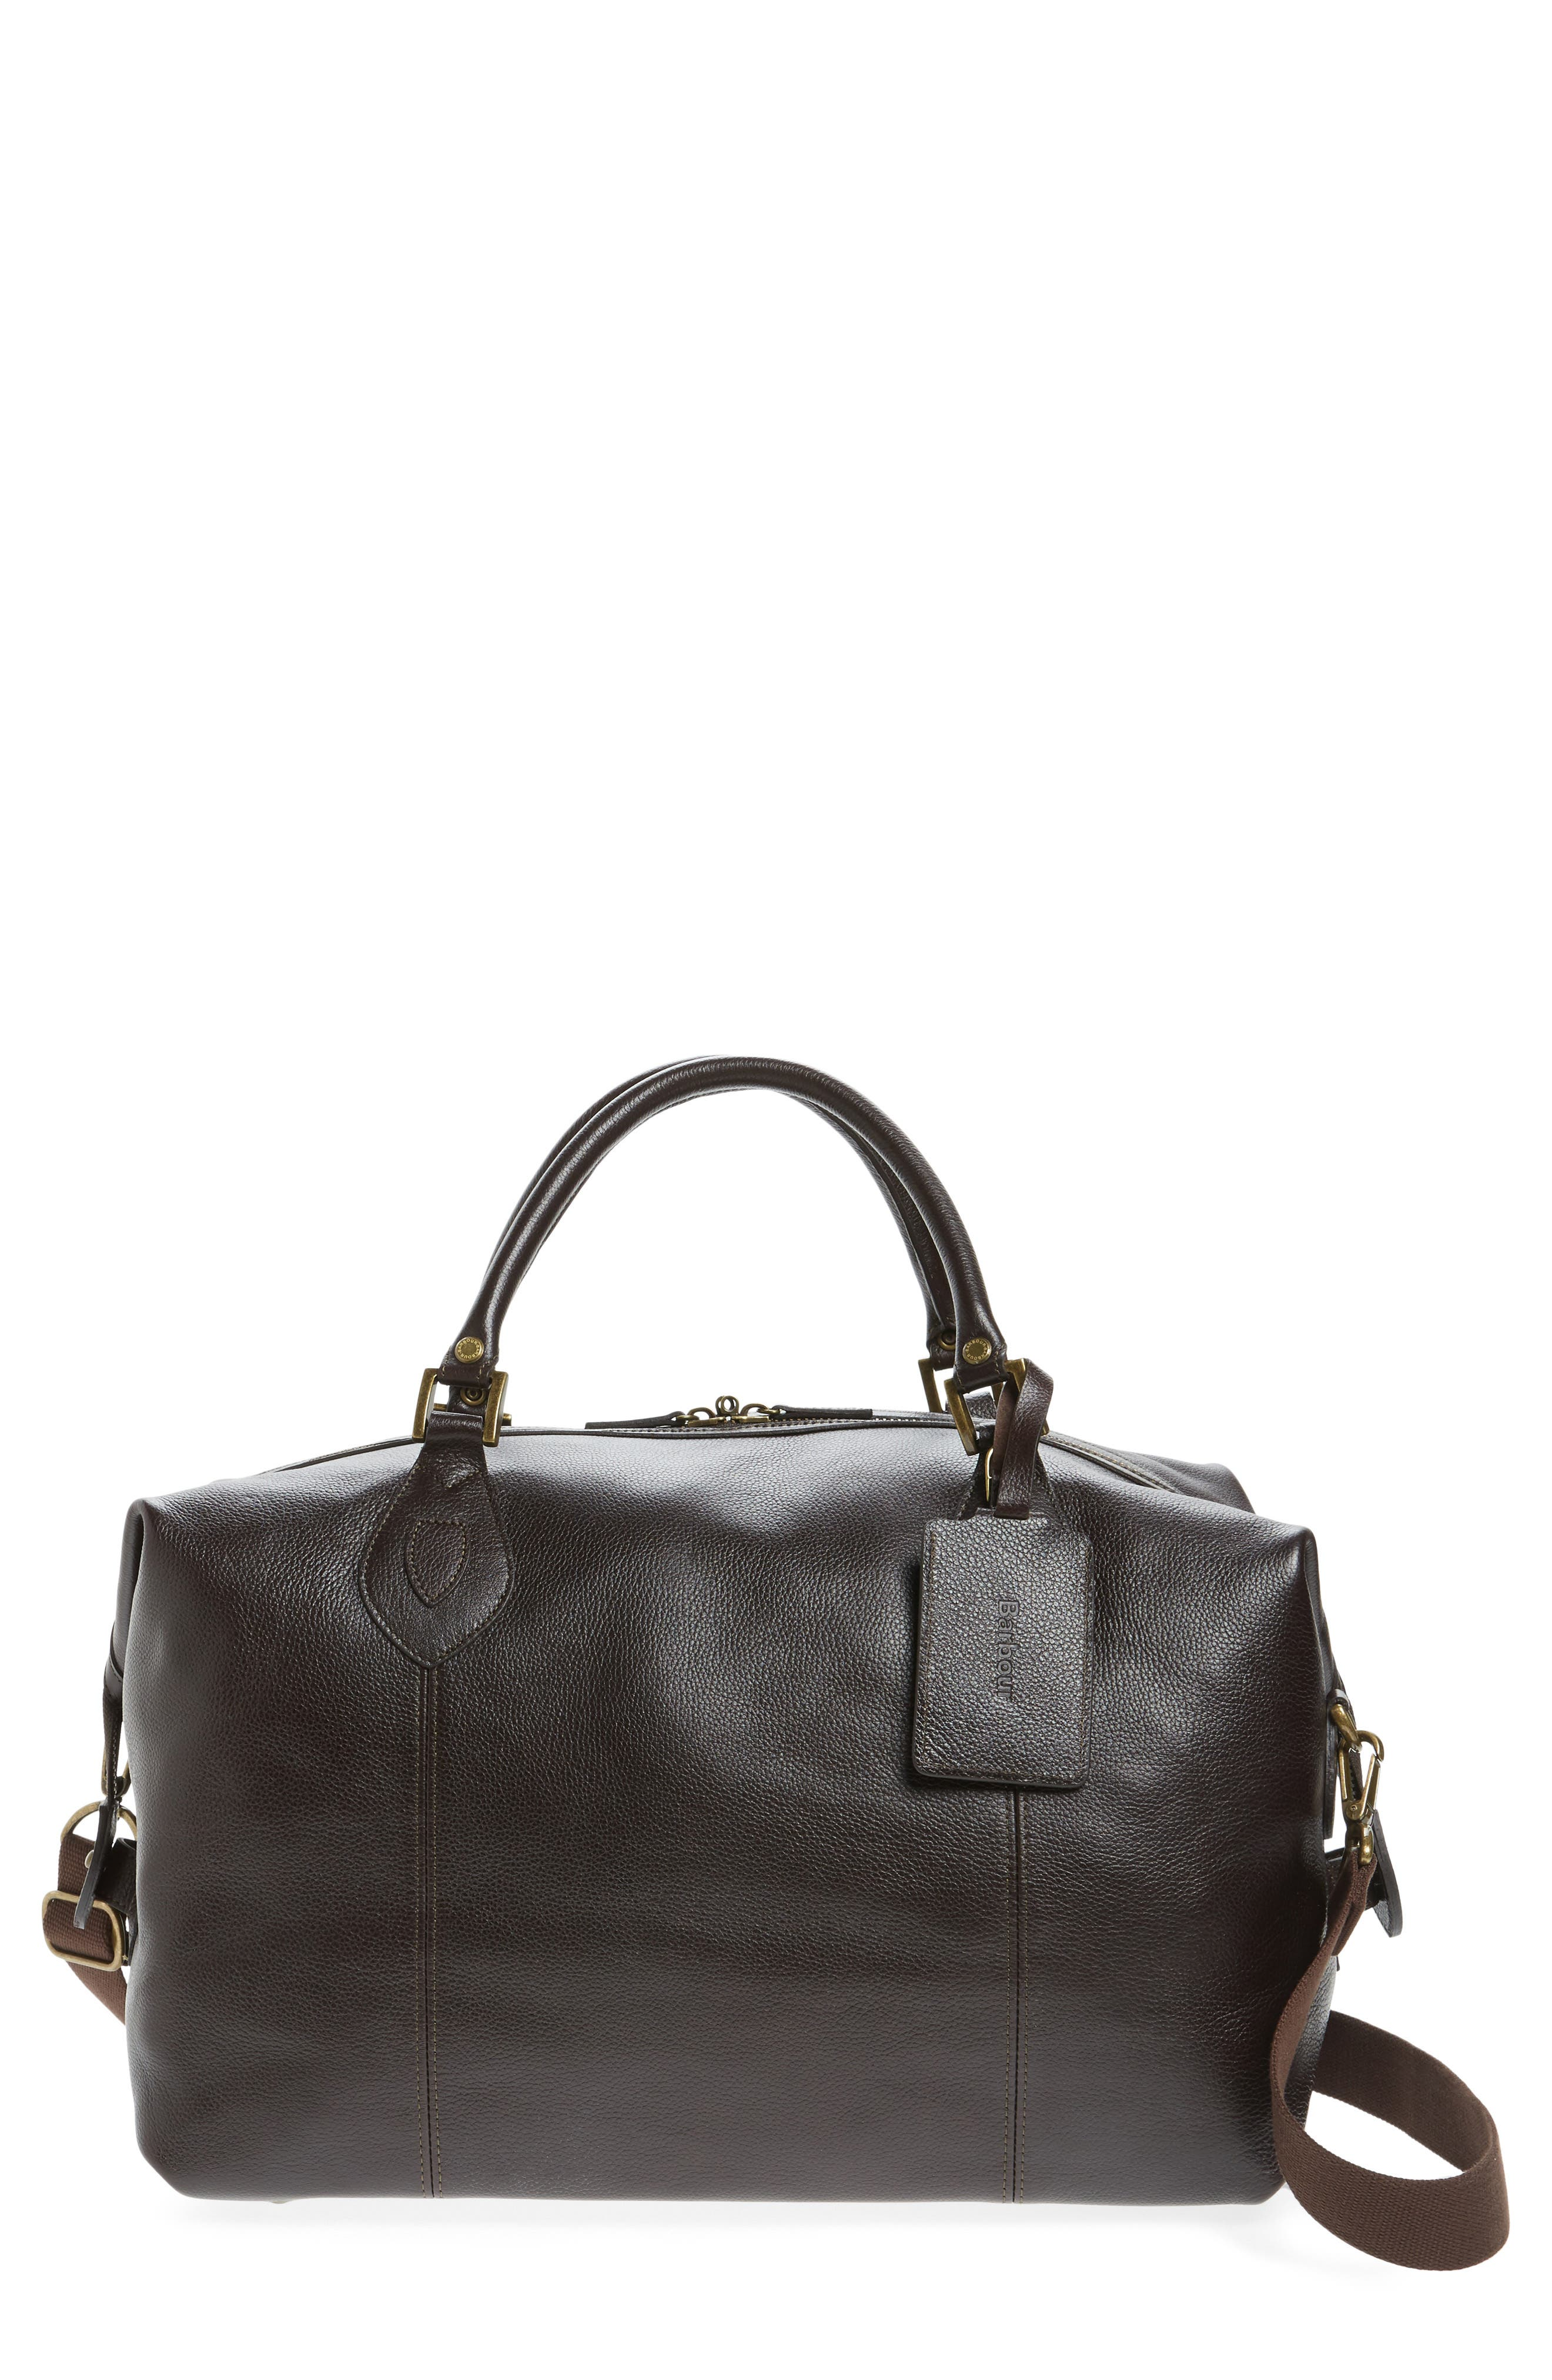 Leather Travel Bag,                         Main,                         color, Chocolate